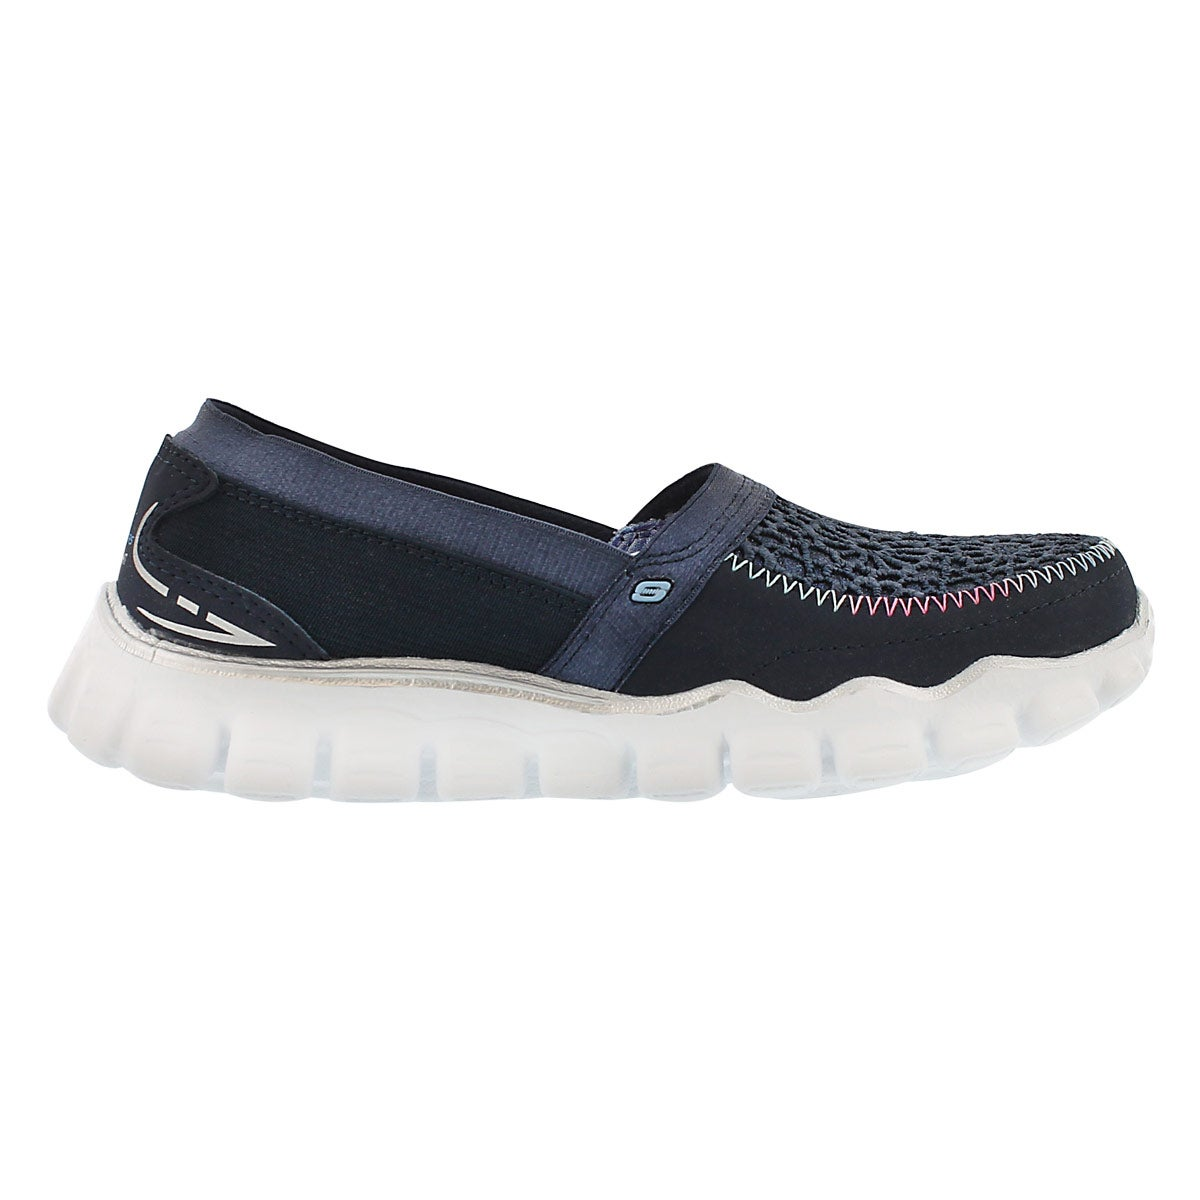 Grls Sugar Shake navy sparkle slip on